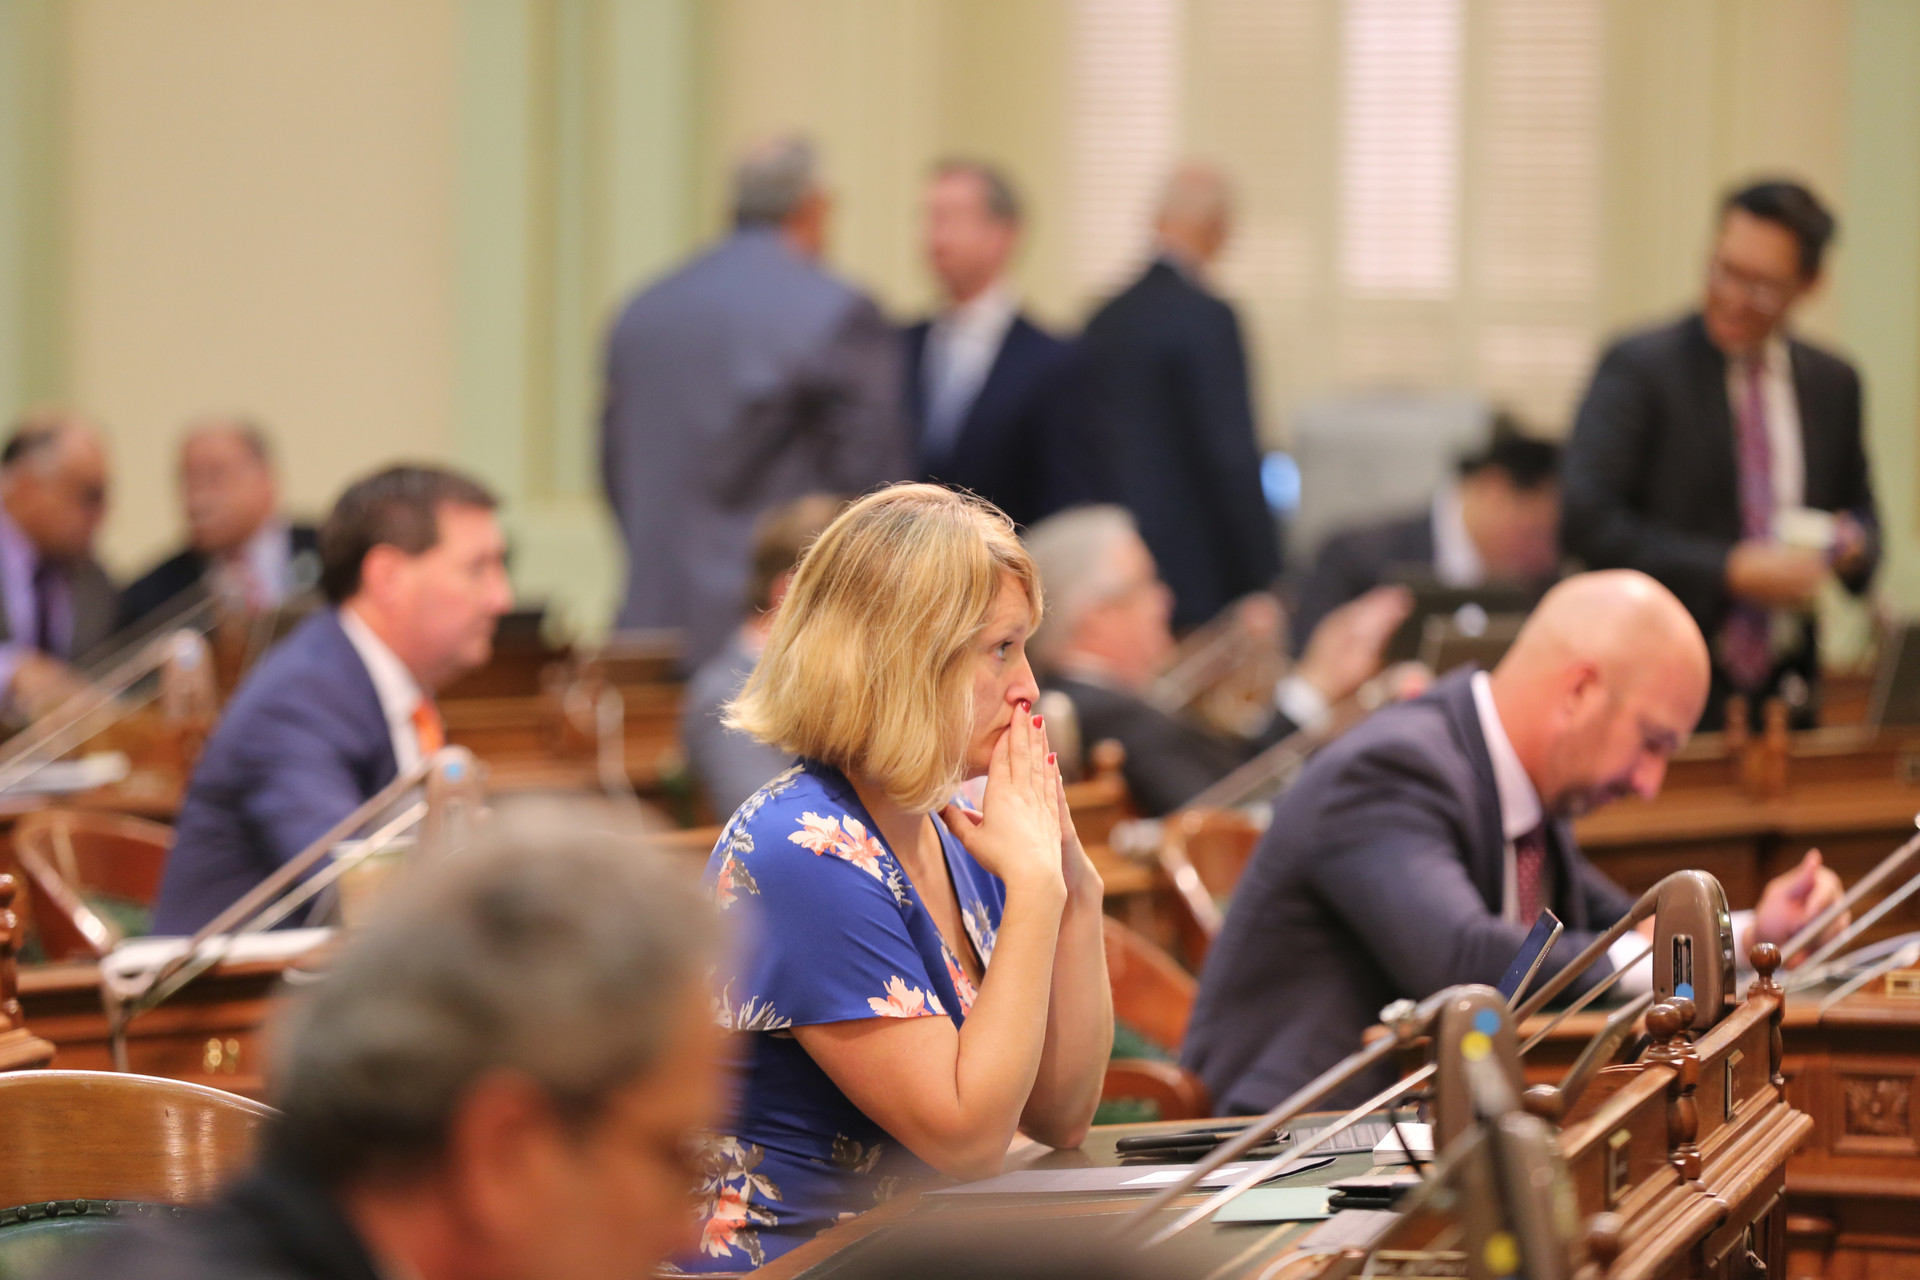 What Passed? Or Is in Limbo? Catch Up With the California Legislature as Session Ends